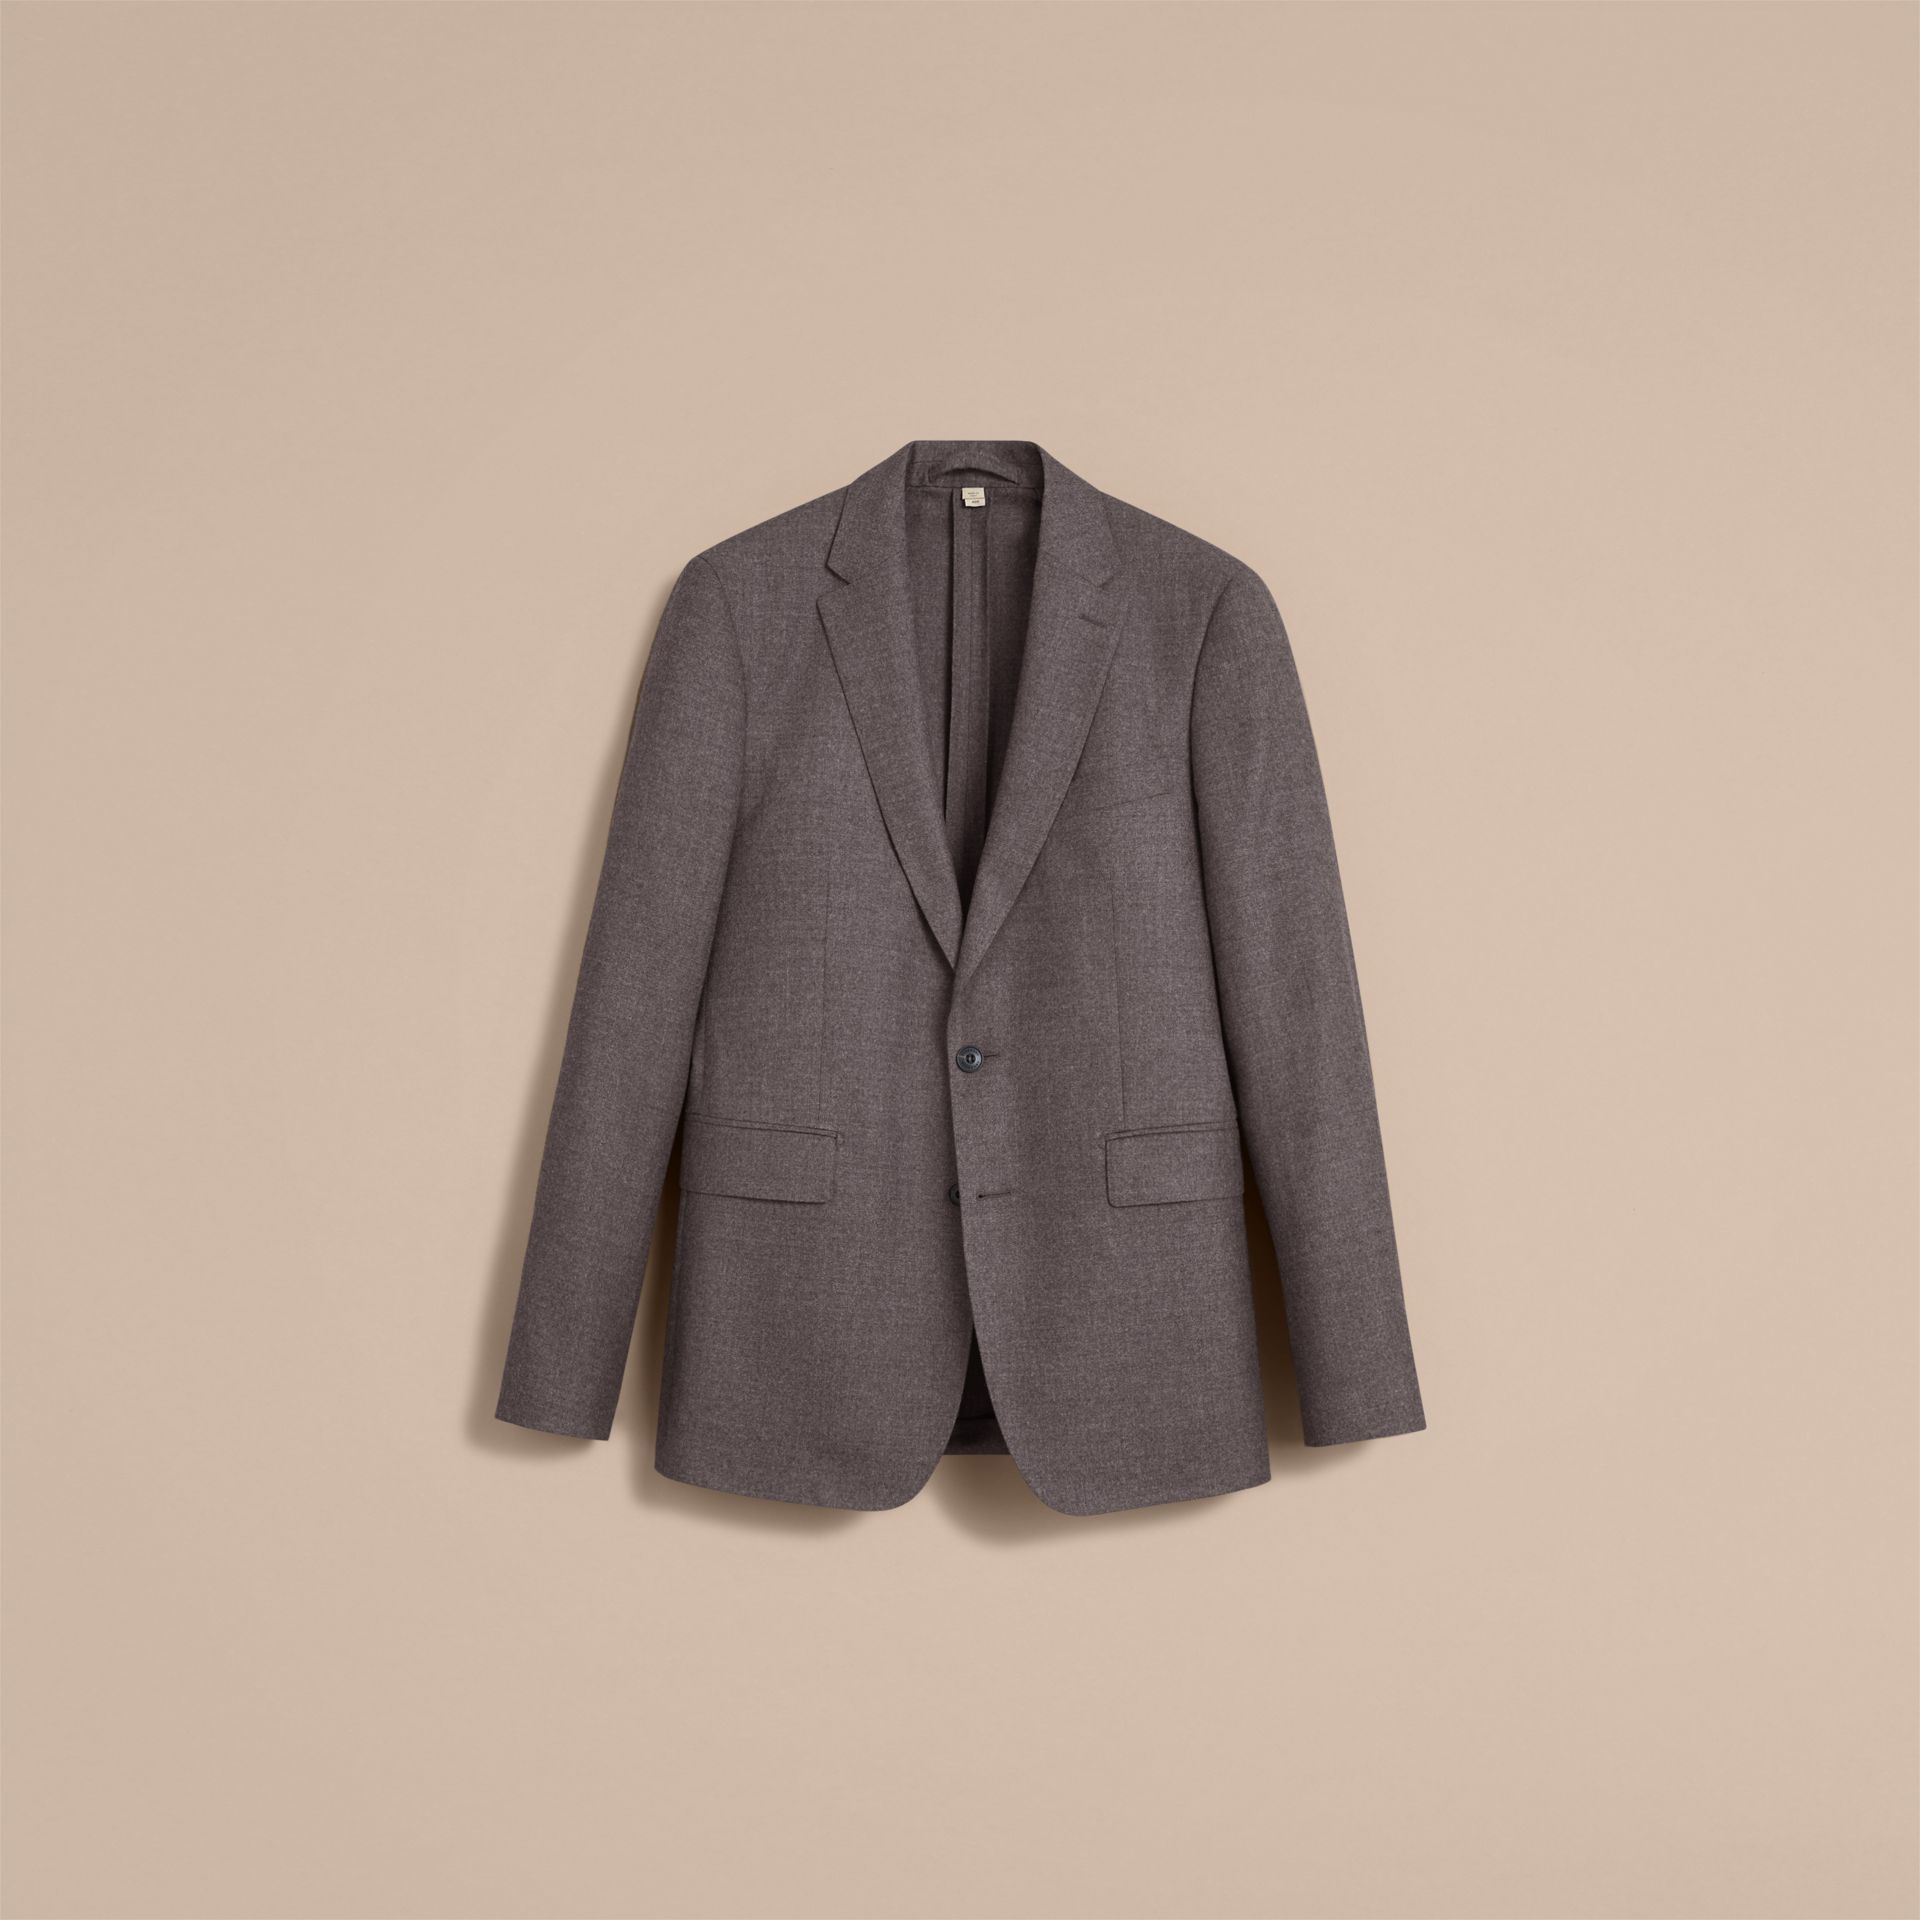 Soho Fit Wool Flannel Suit in Dark Charcoal Melange - Men | Burberry Australia - gallery image 4